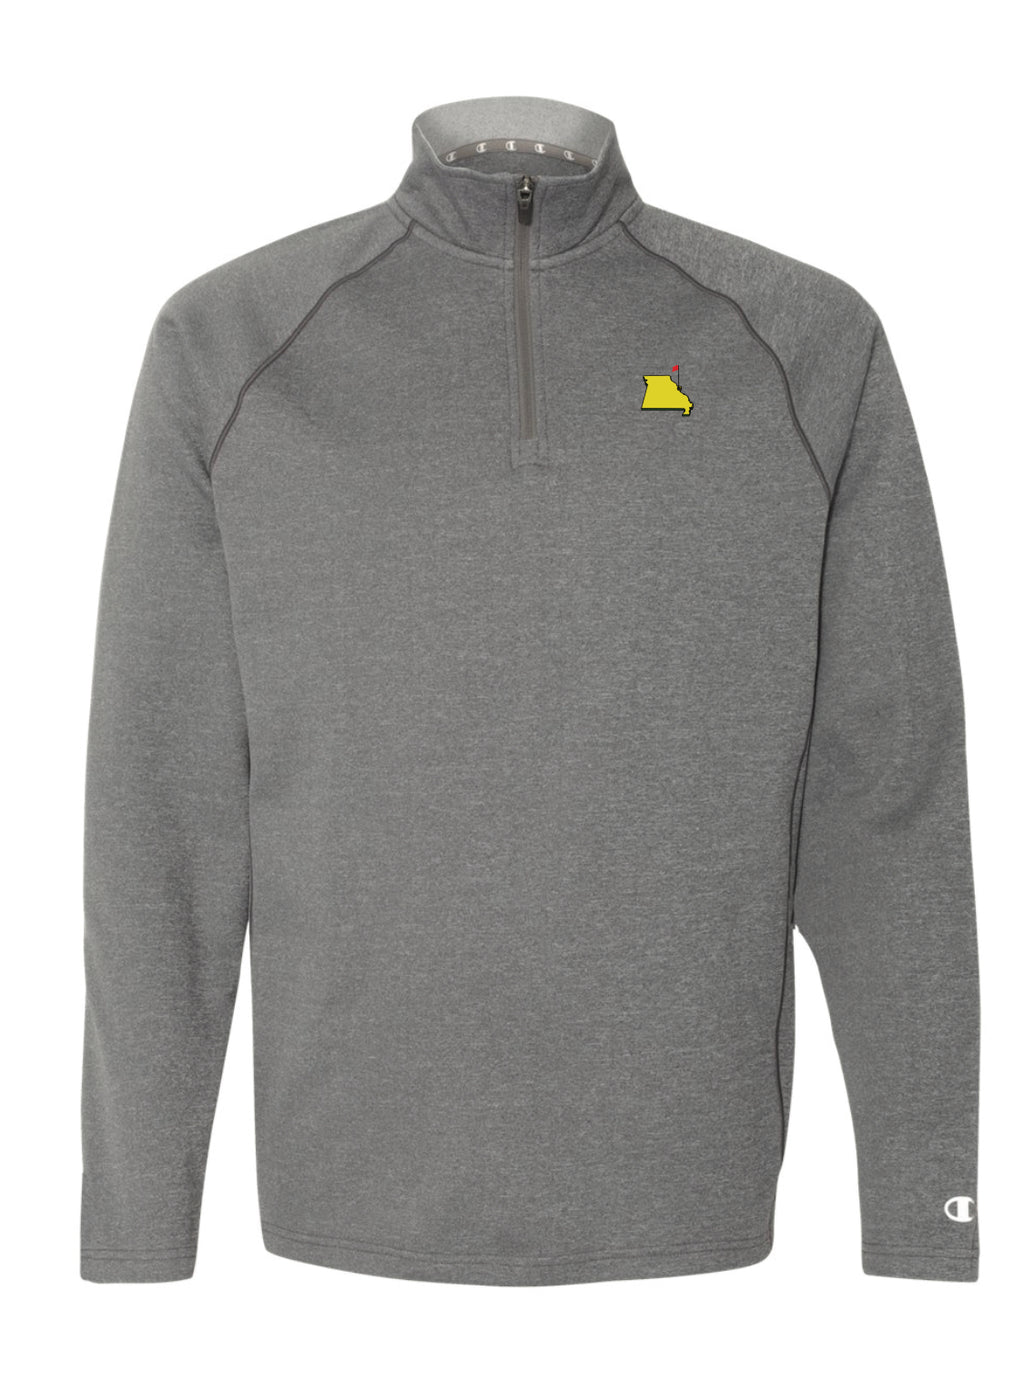 Sale: The Dotem Champion Performance 1/4 Zip